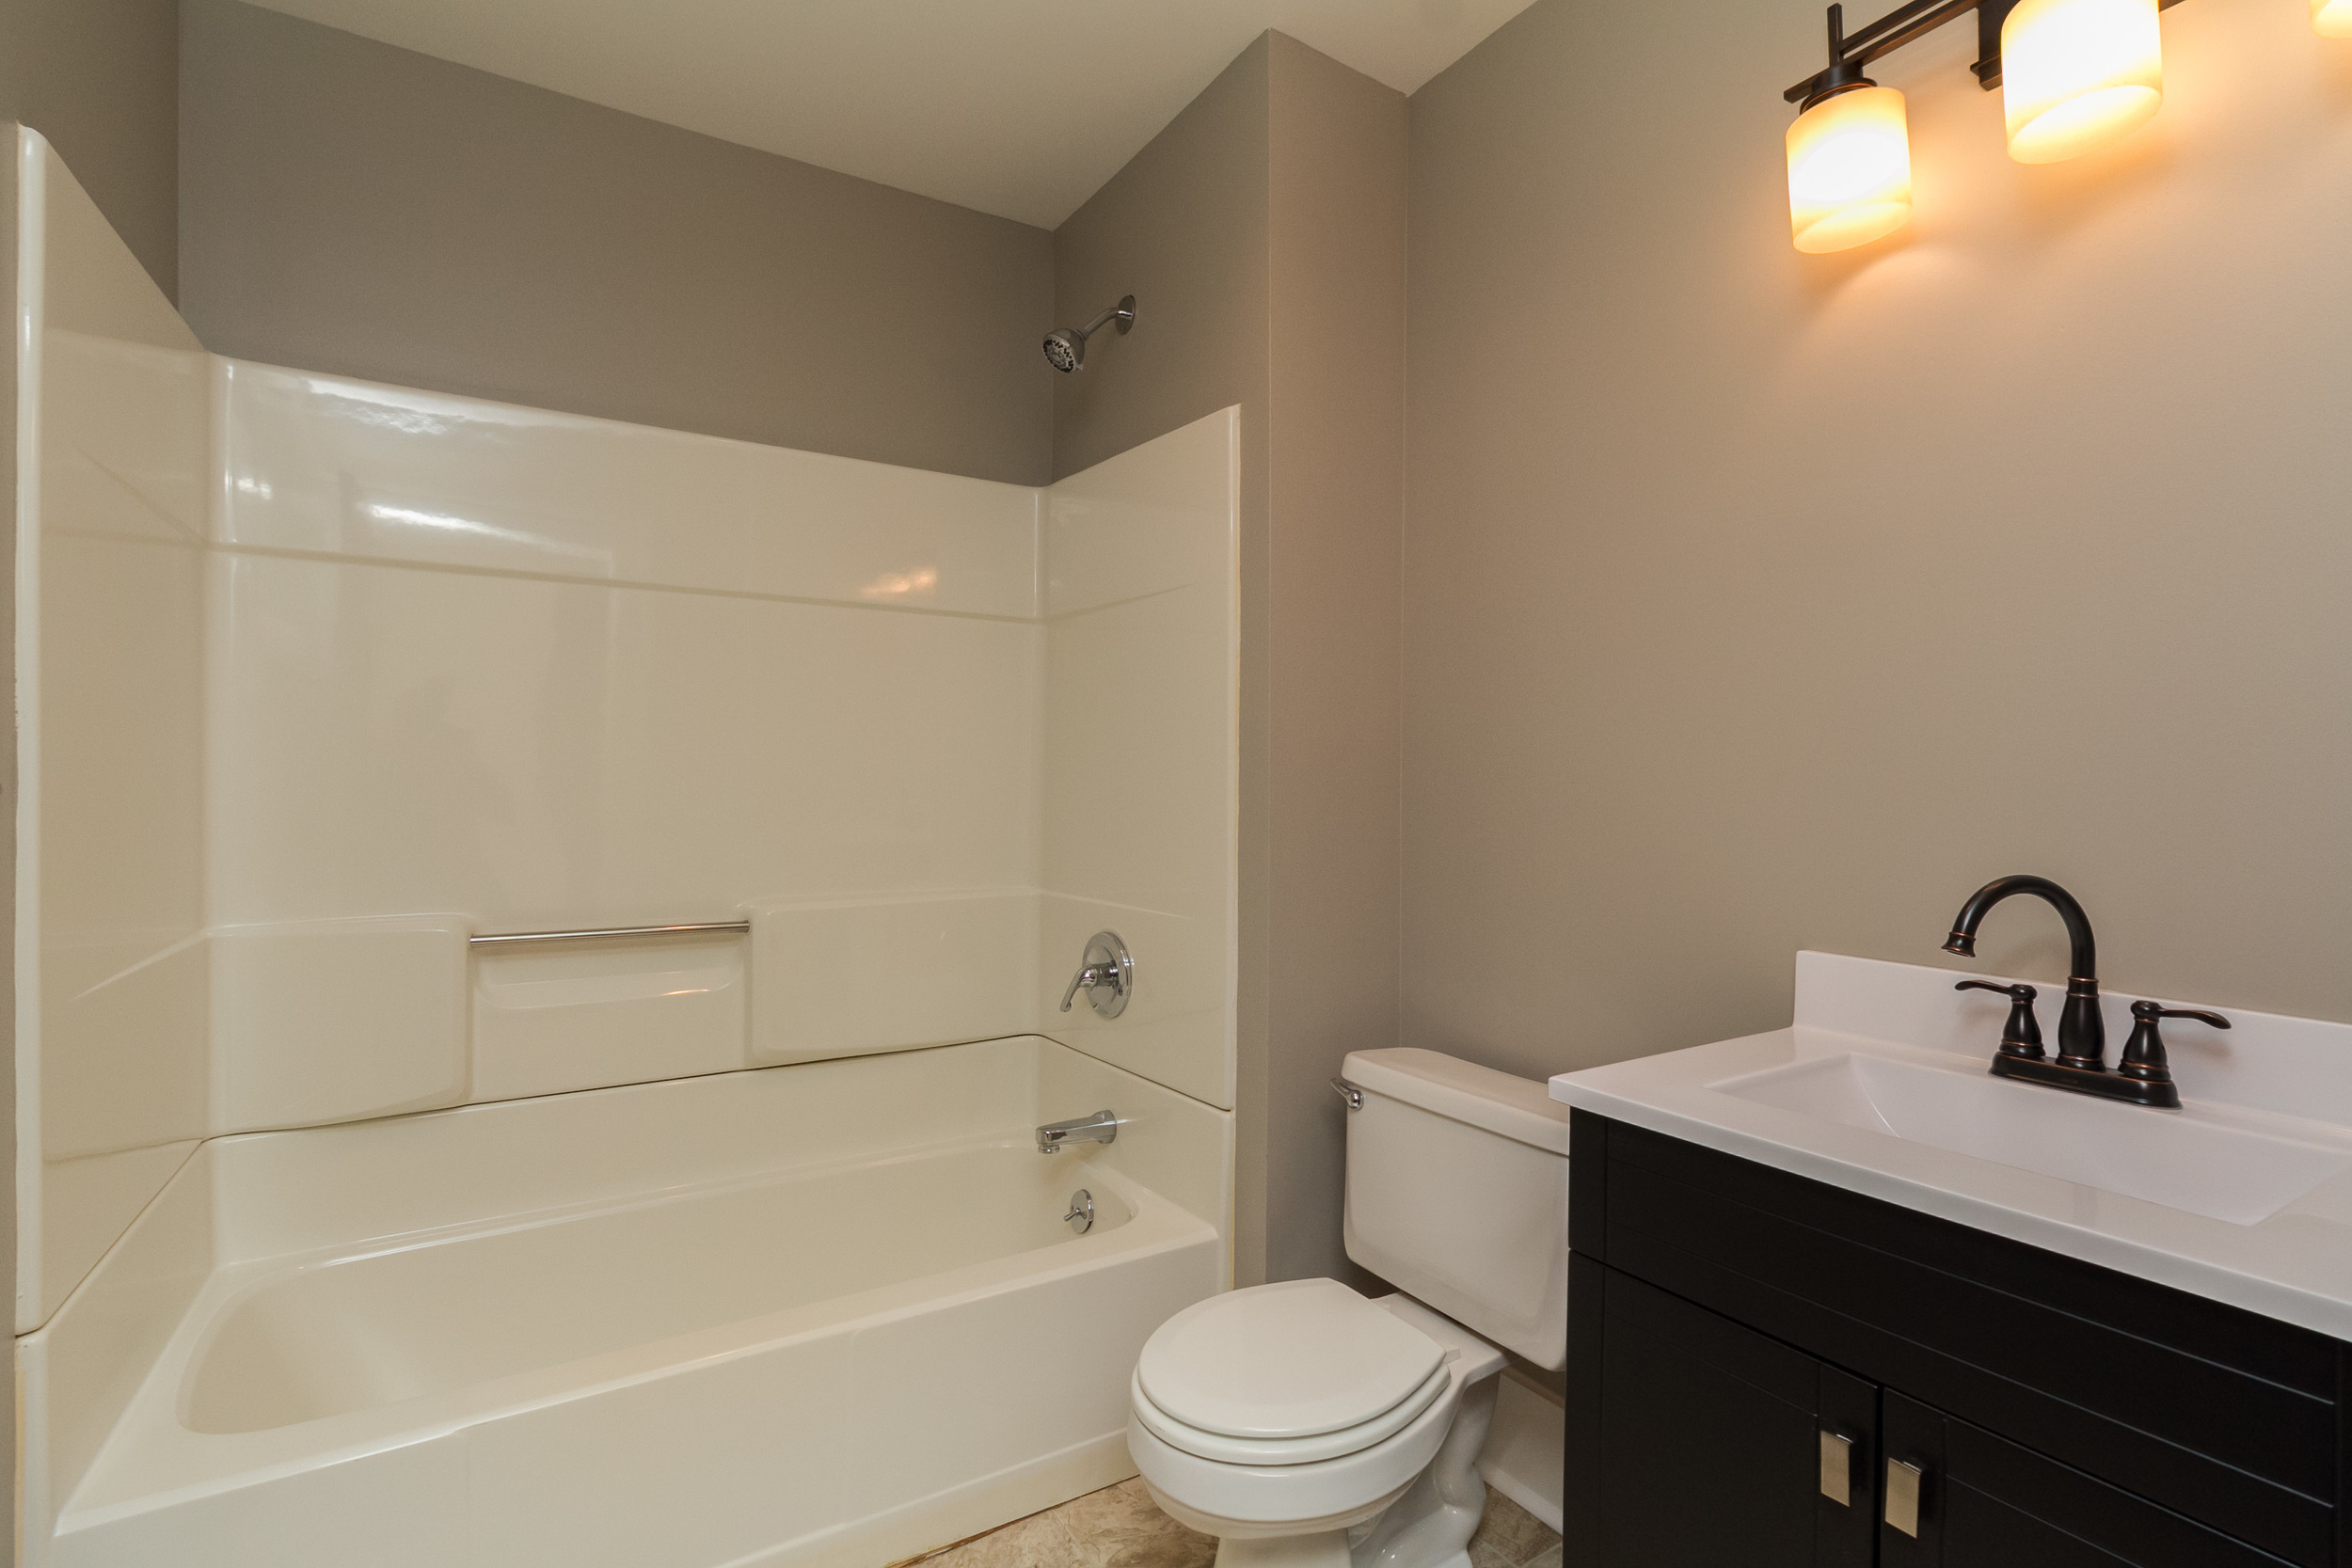 Main bath after - We removed the old tile, added new drywall, vanity, lighting and flooring.